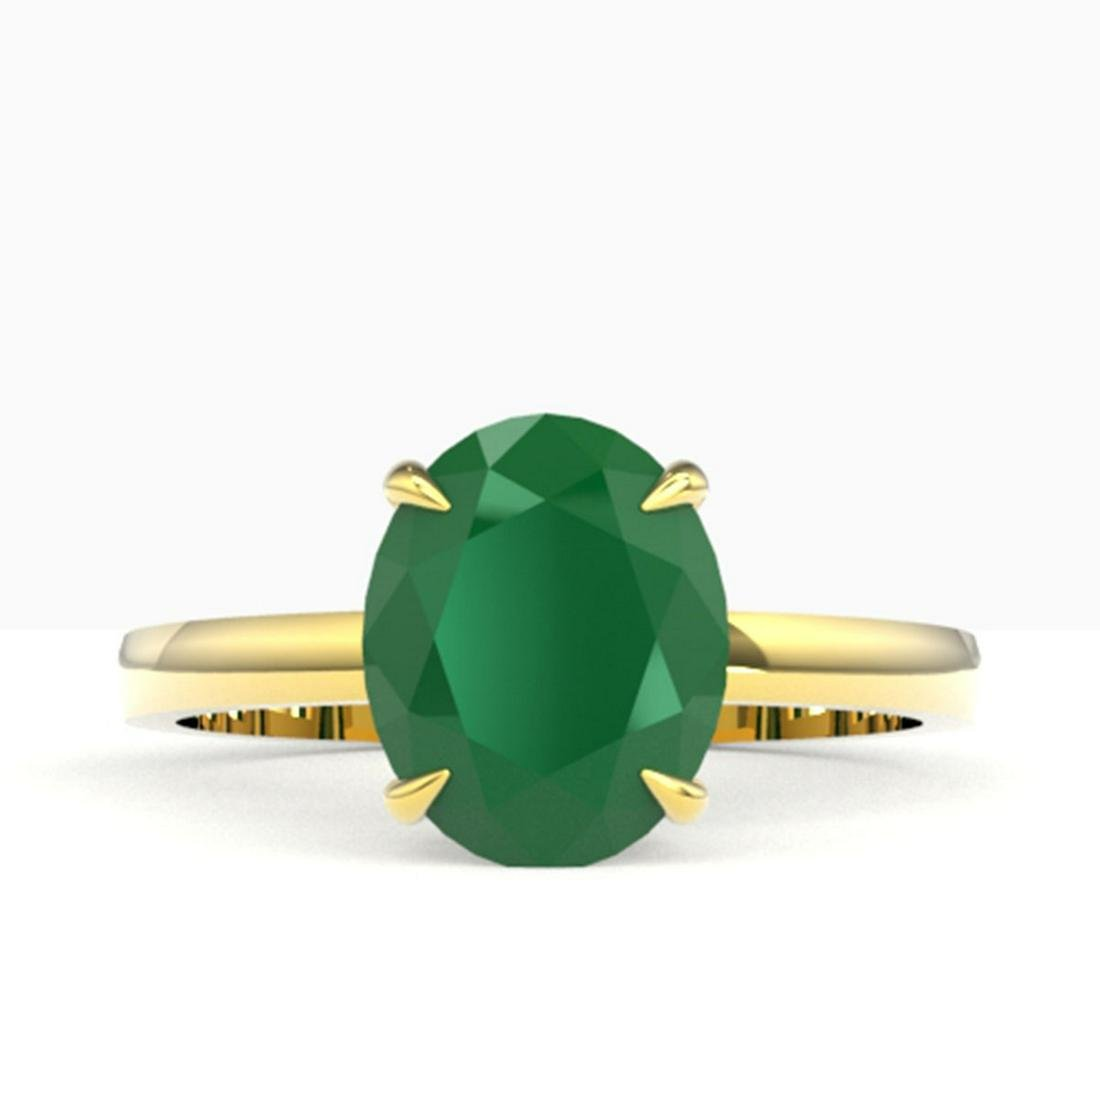 3.50 ctw Emerald Solitaire Ring 18K Yellow Gold